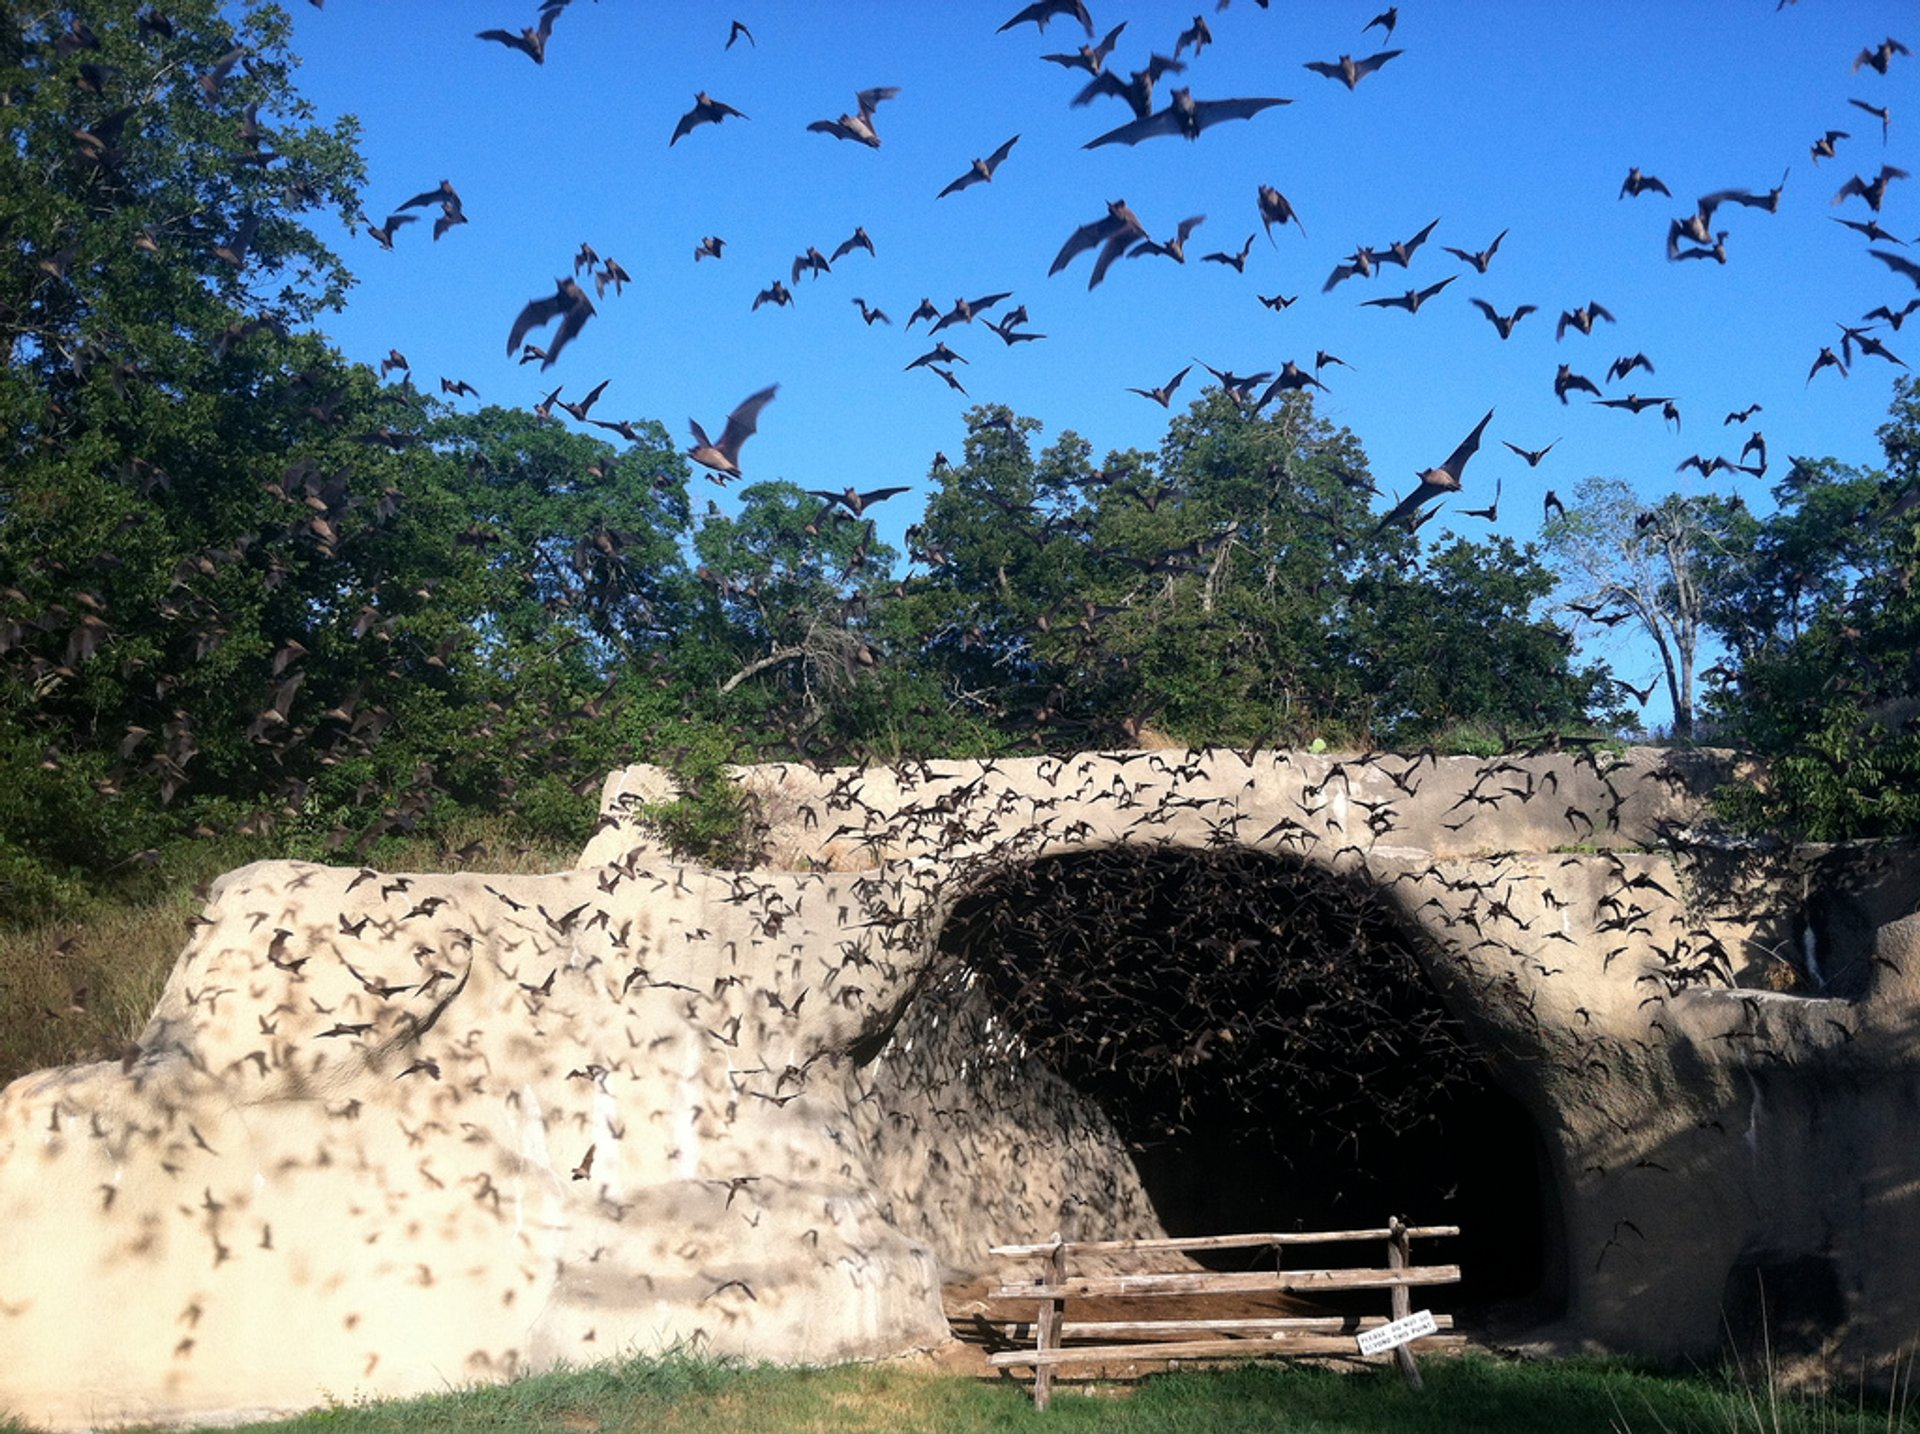 Bats emerging from Chiroptorium 2020